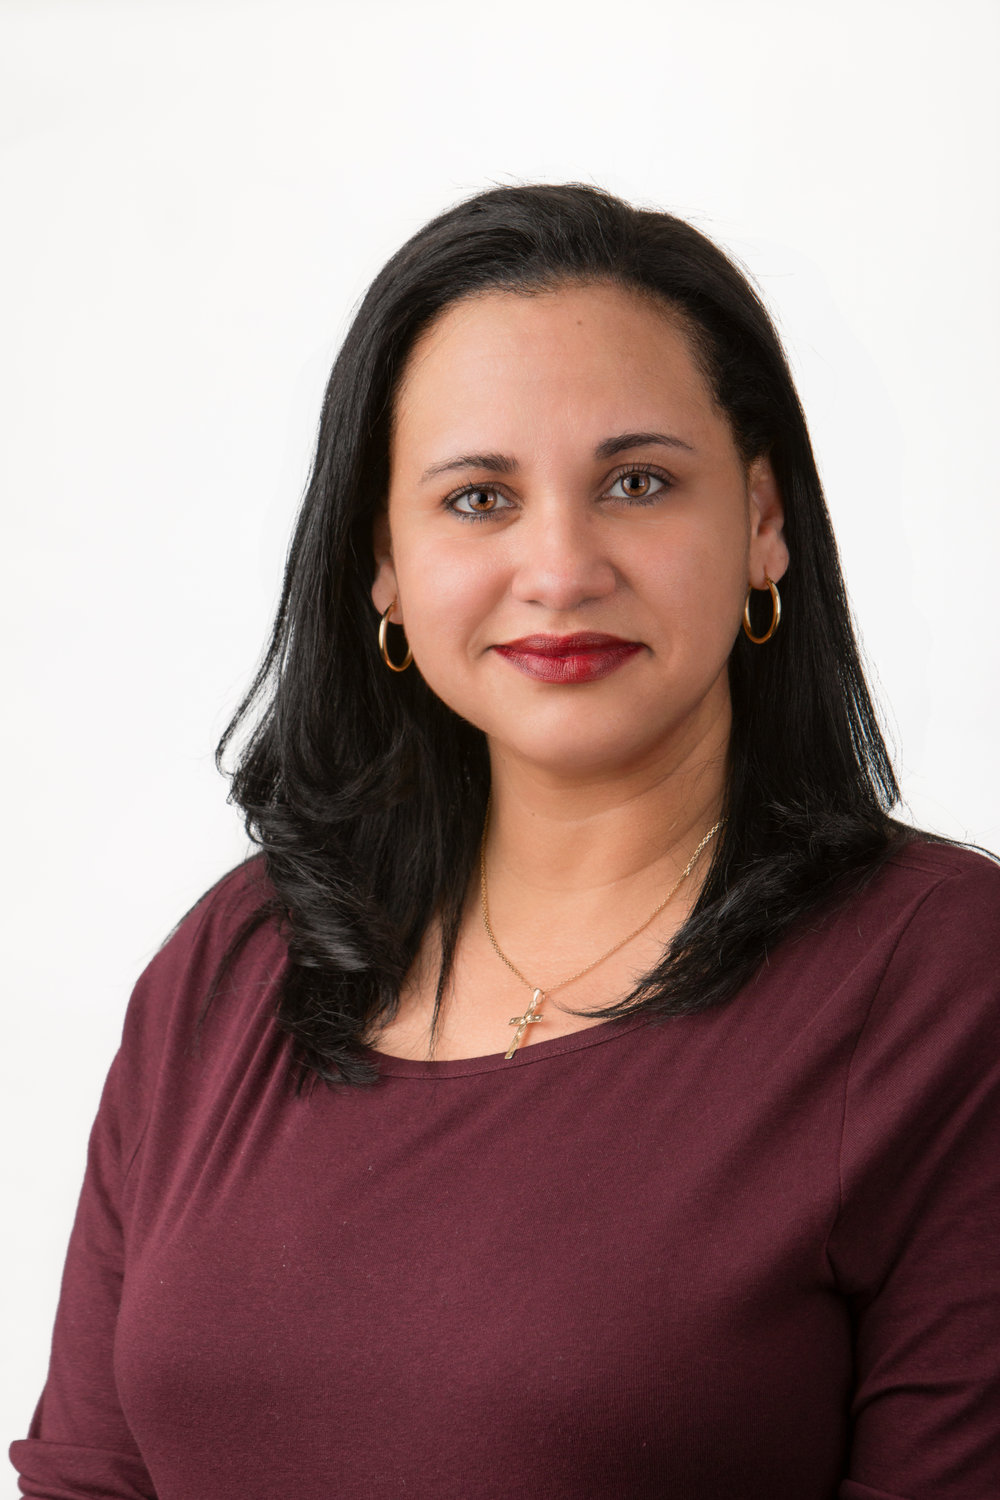 "Yajaira ""Heidi"" Torres   754-366-4621  PropertiesByHeidi@gmail.com  Heidi began her real estate career in 1997 as a receptionist and later managing a real estate company. While working in the office, Heidi's attention to detail and knowledge of the real estate market became important components that today she provides through her Realtor® career. Her goal is to assist in realizing dreams while supporting customers in good decision making through their buying or selling process. Contact Heidi to help you with your next move and you'll be rewarded with a memorable experience!"